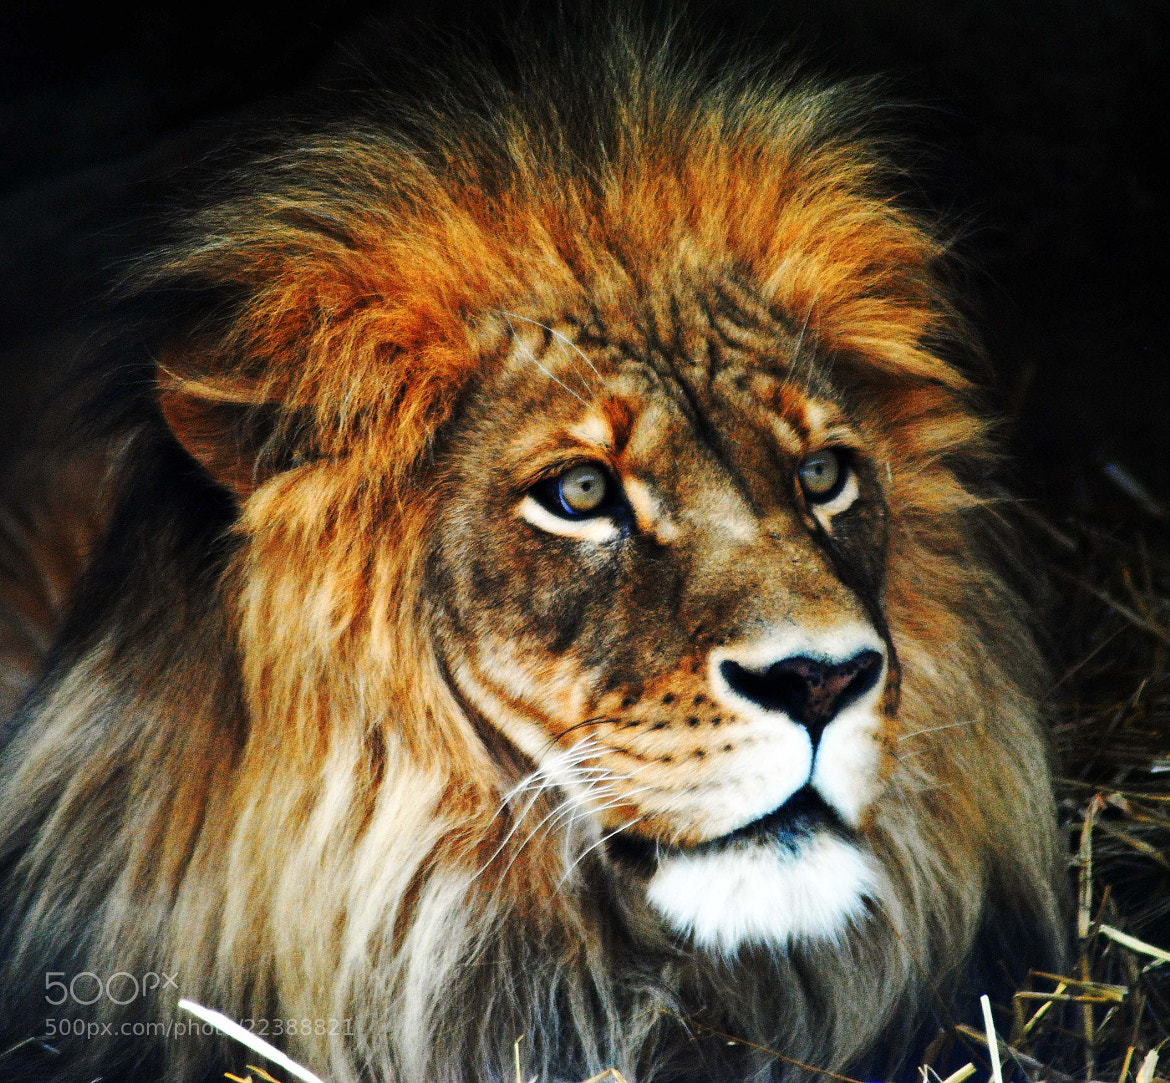 Photograph Big Cat Portrait by cheryl rendino on 500px